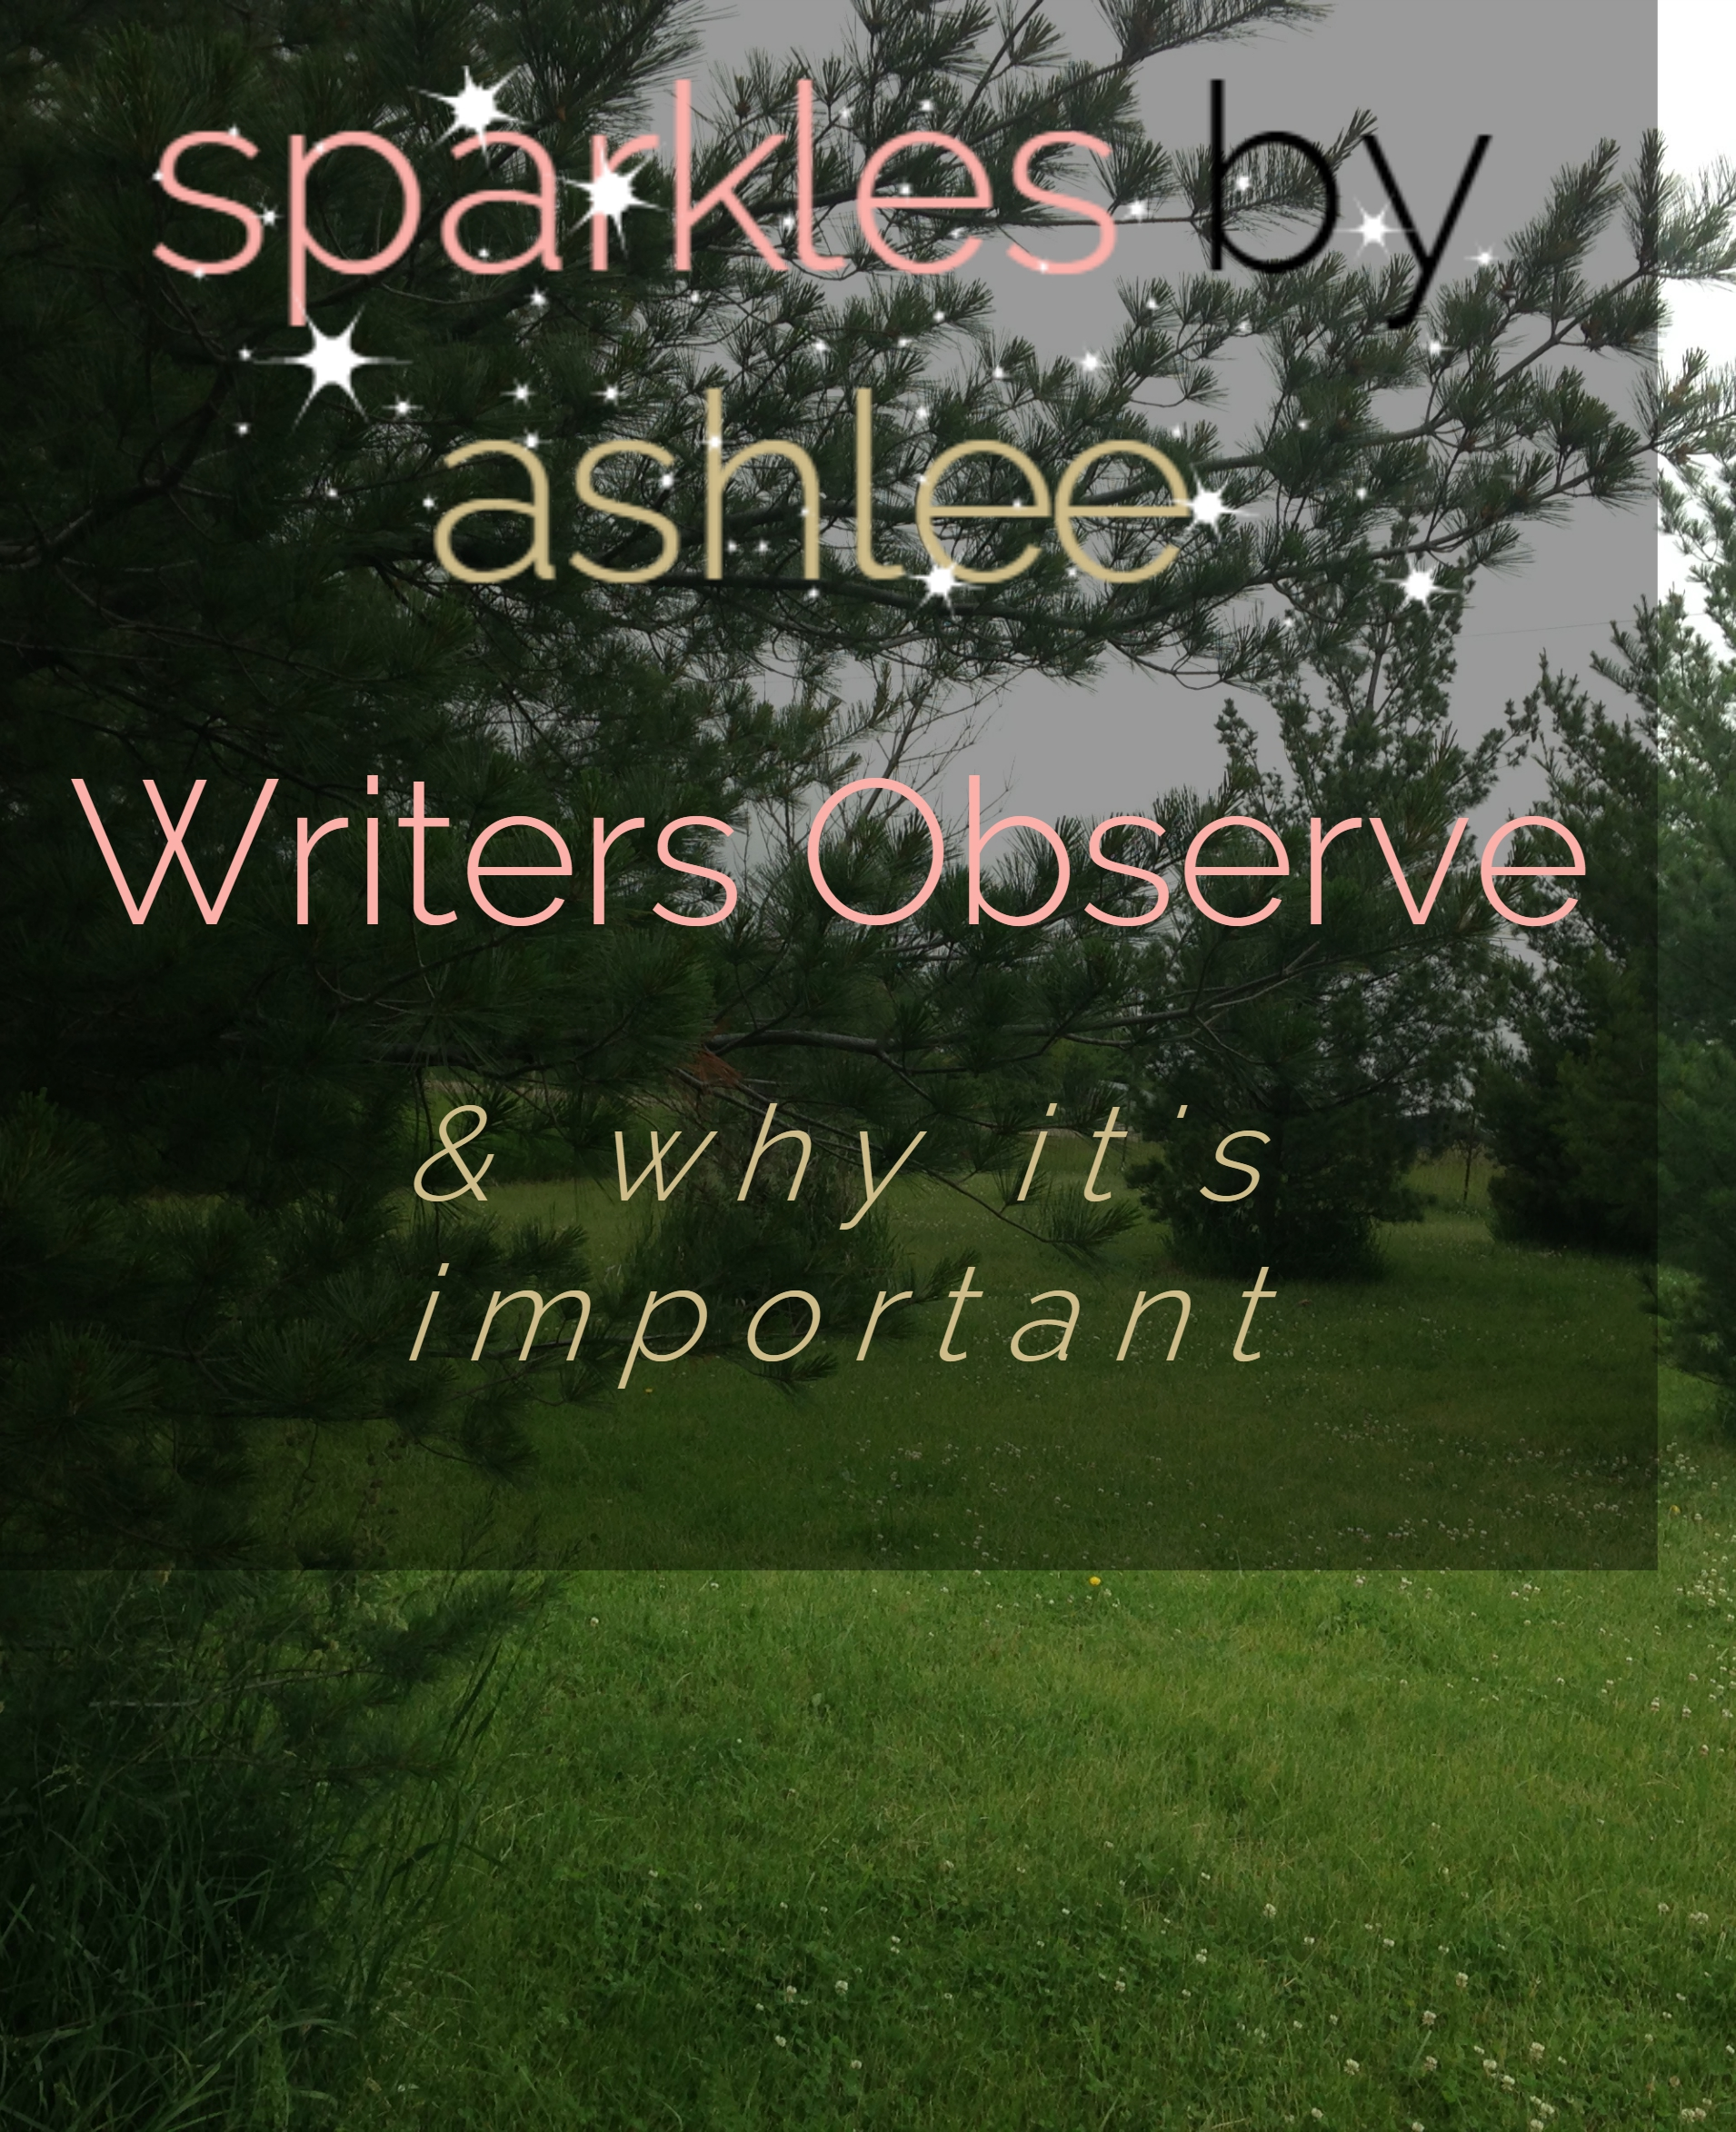 Writers-Observe-Sparkles-by-Ashlee.jpg